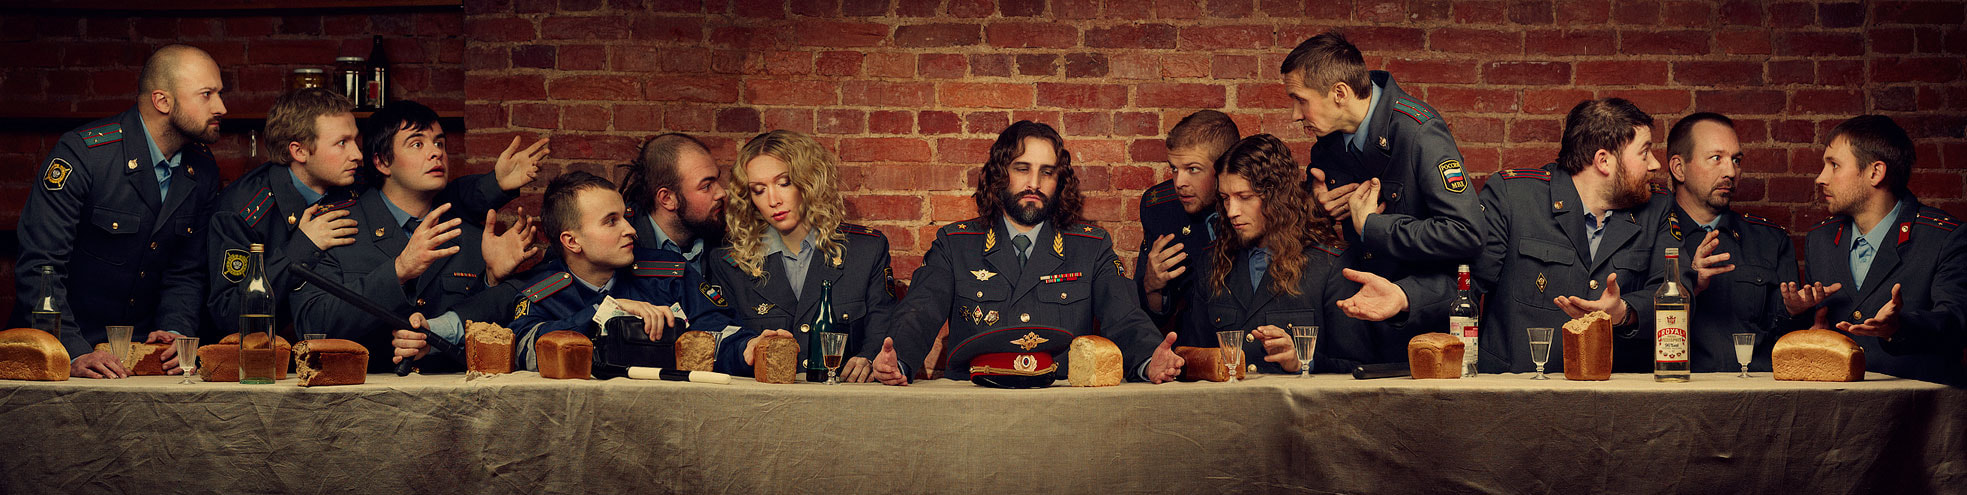 Photograph RUSSIAN POLICE by Kezzyn Waits on 500px